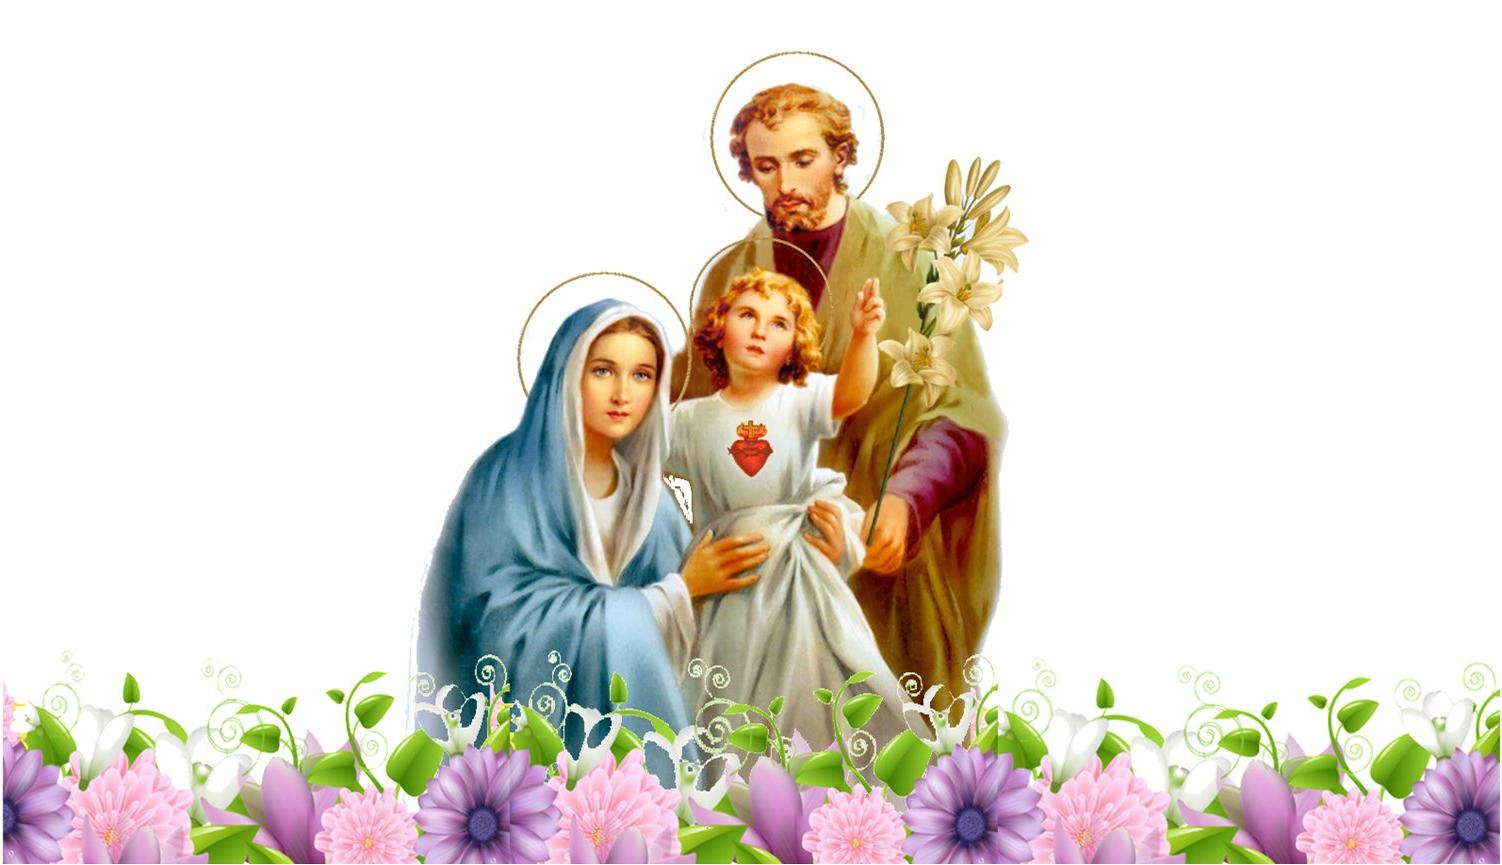 Jesus-Family-Wallpaper-19.jpg